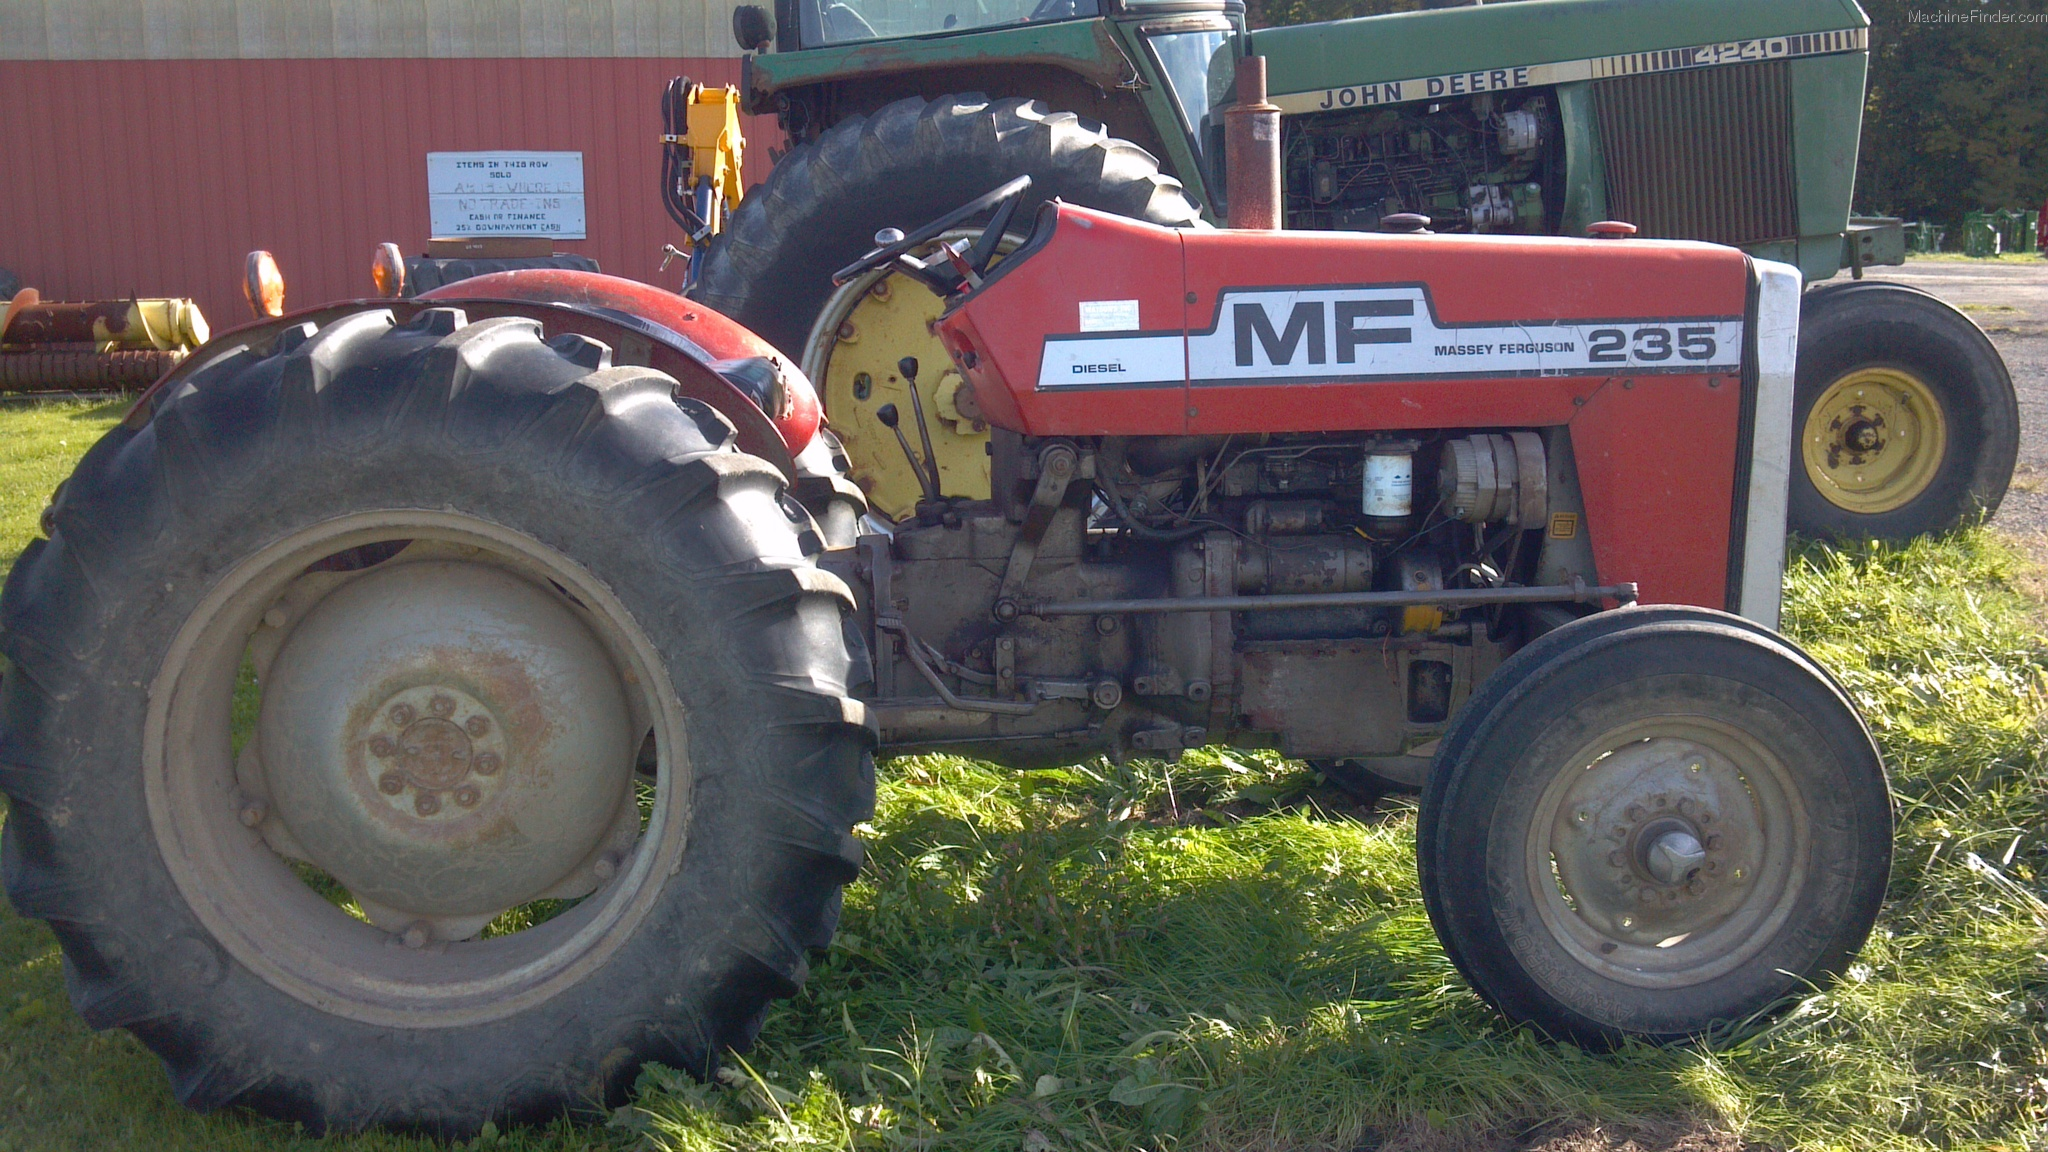 Massey ferguson 235 photo - 4